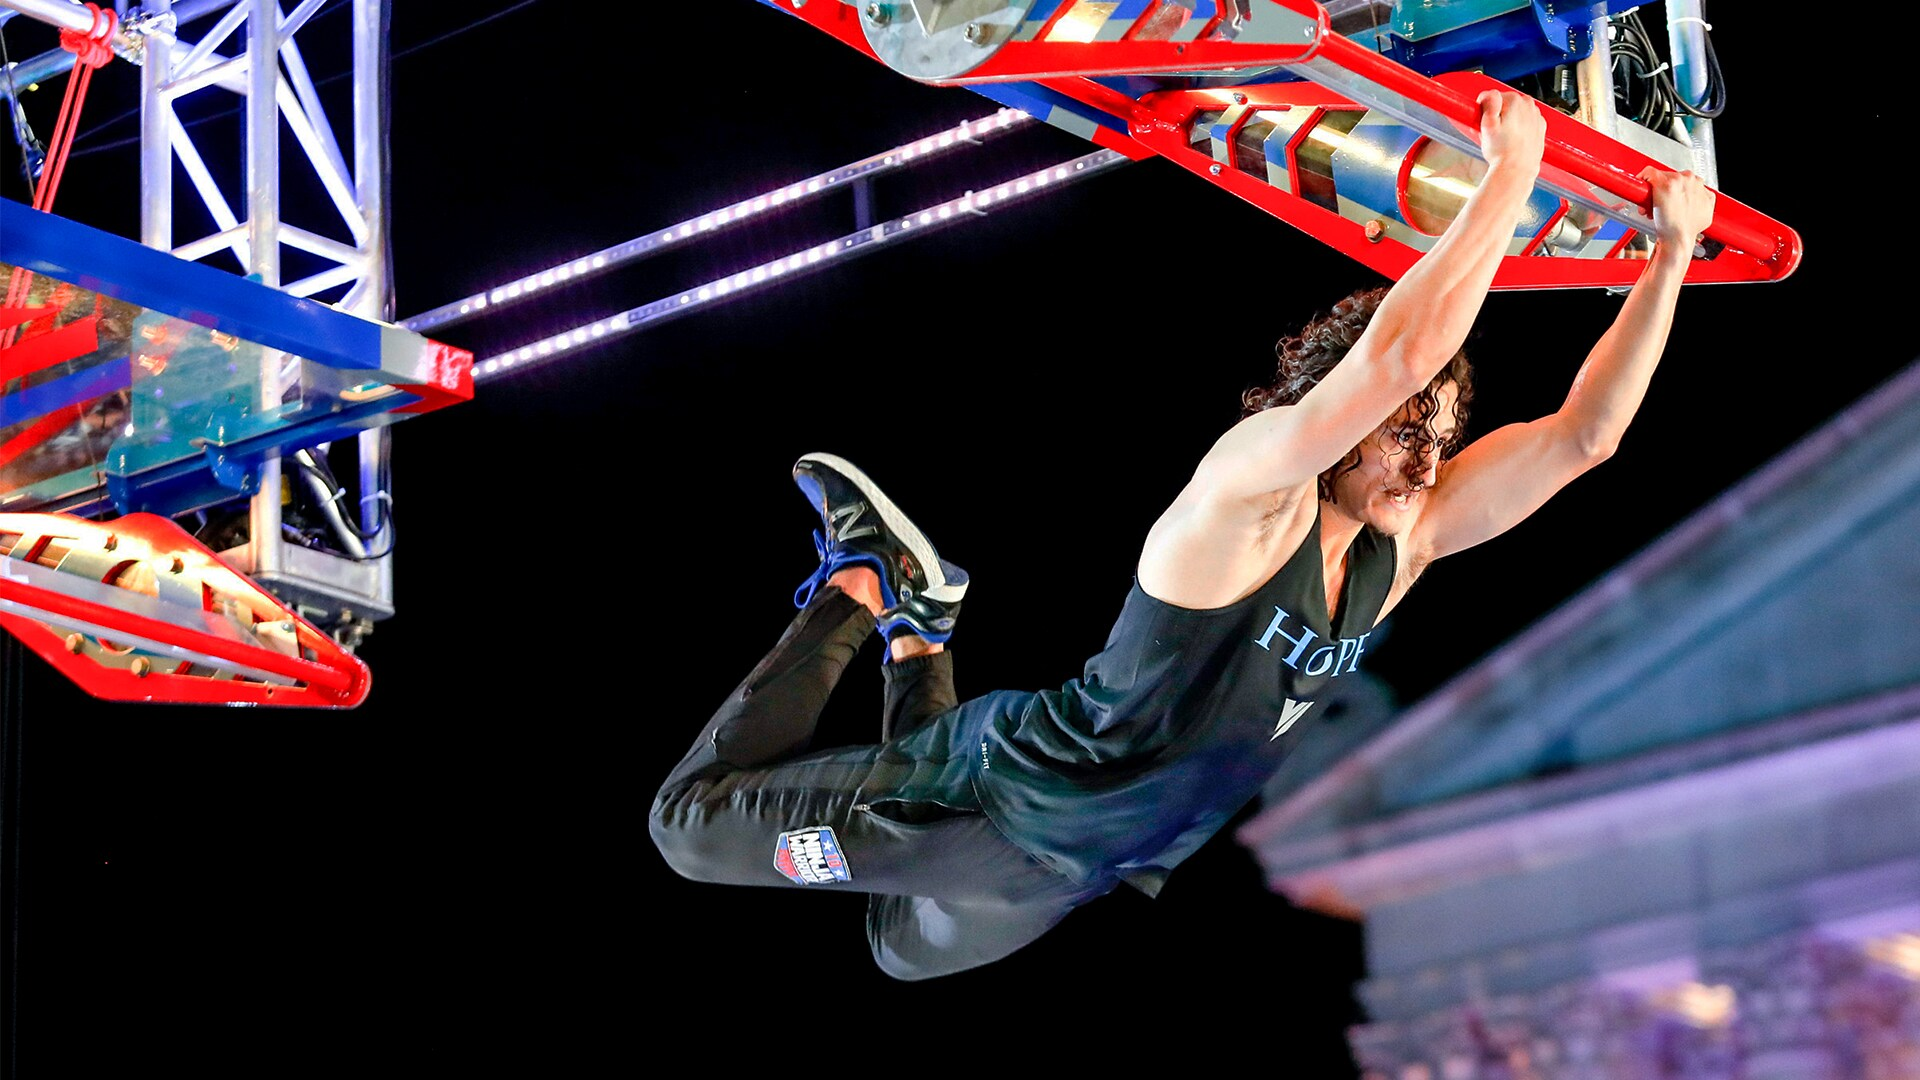 Watch American Ninja Warrior | Peacock